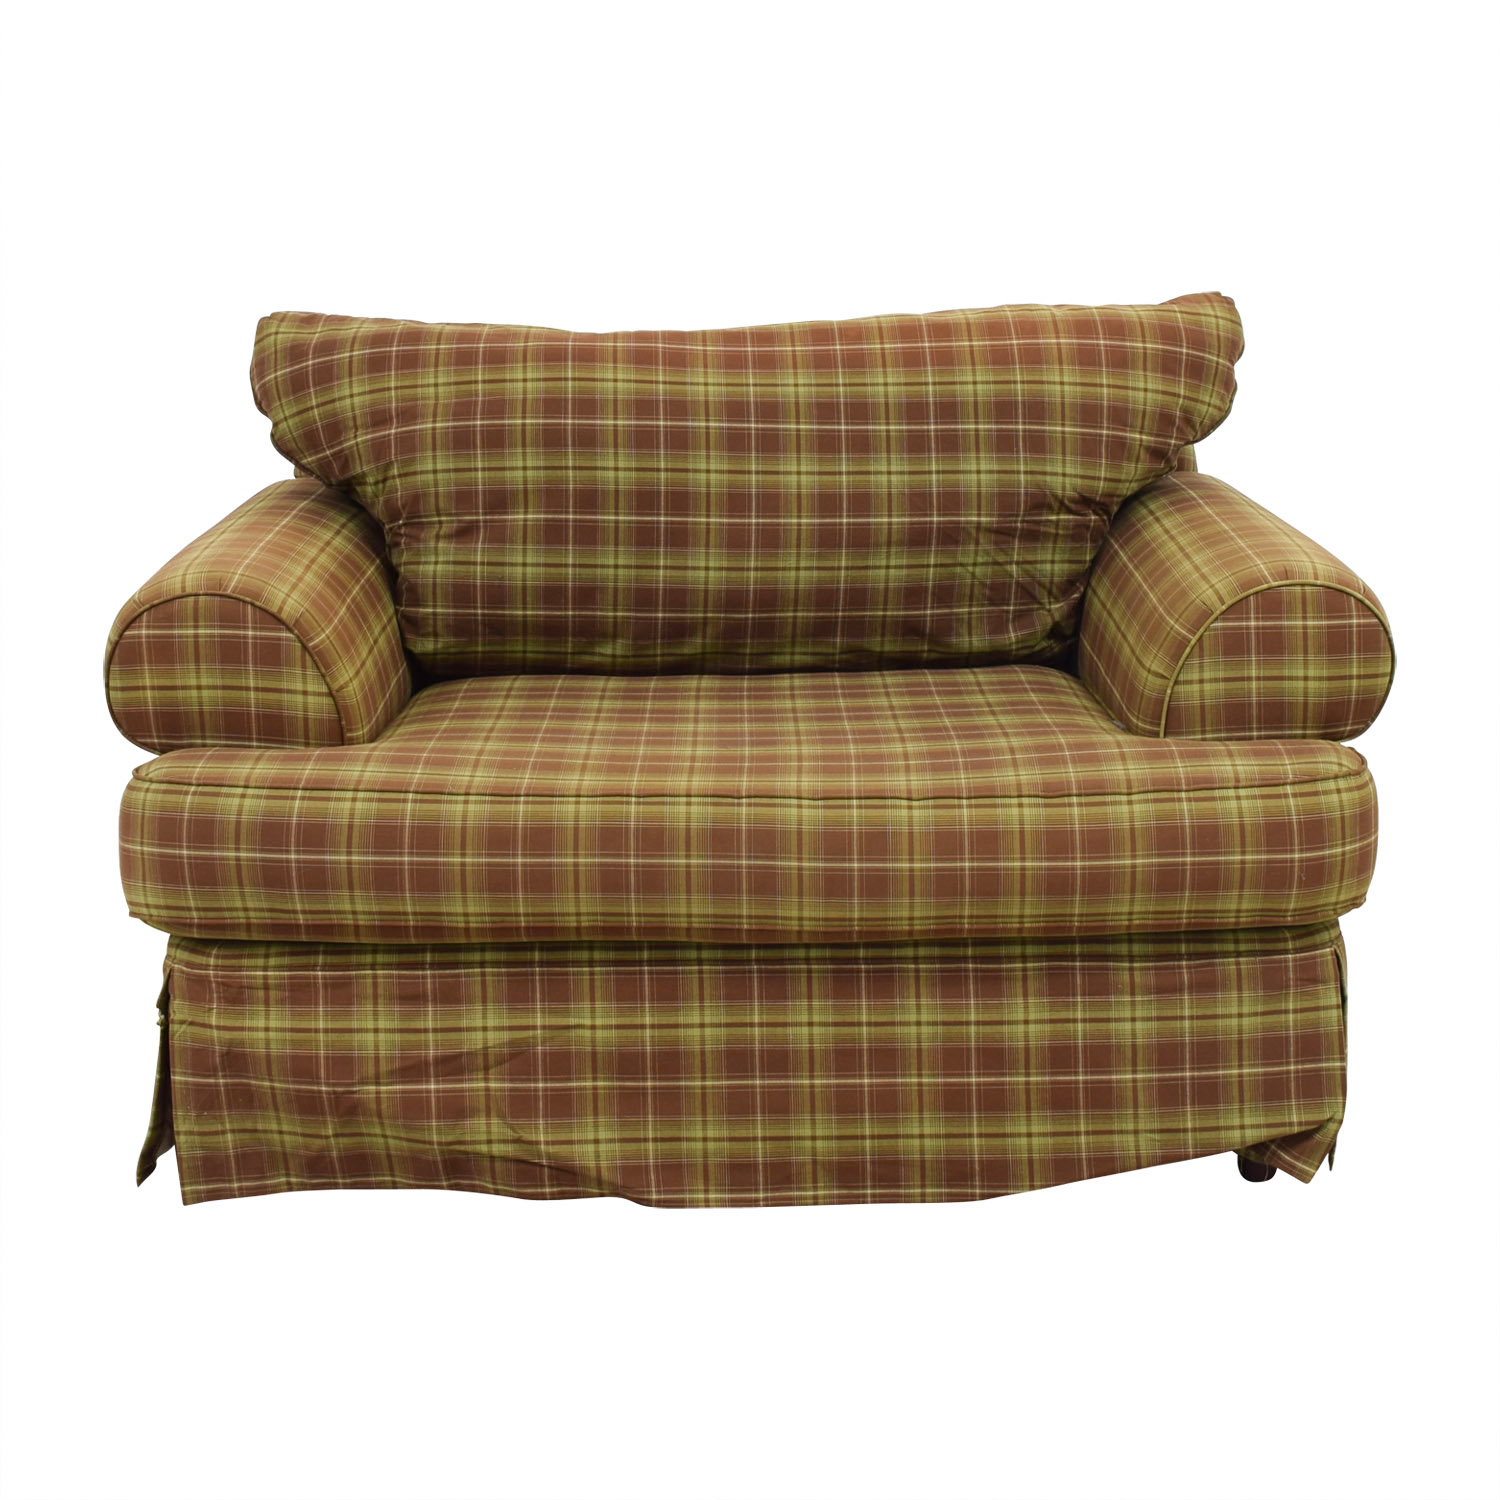 Klaussner Klaussner Green and Beige Plaid Loveseat coupon